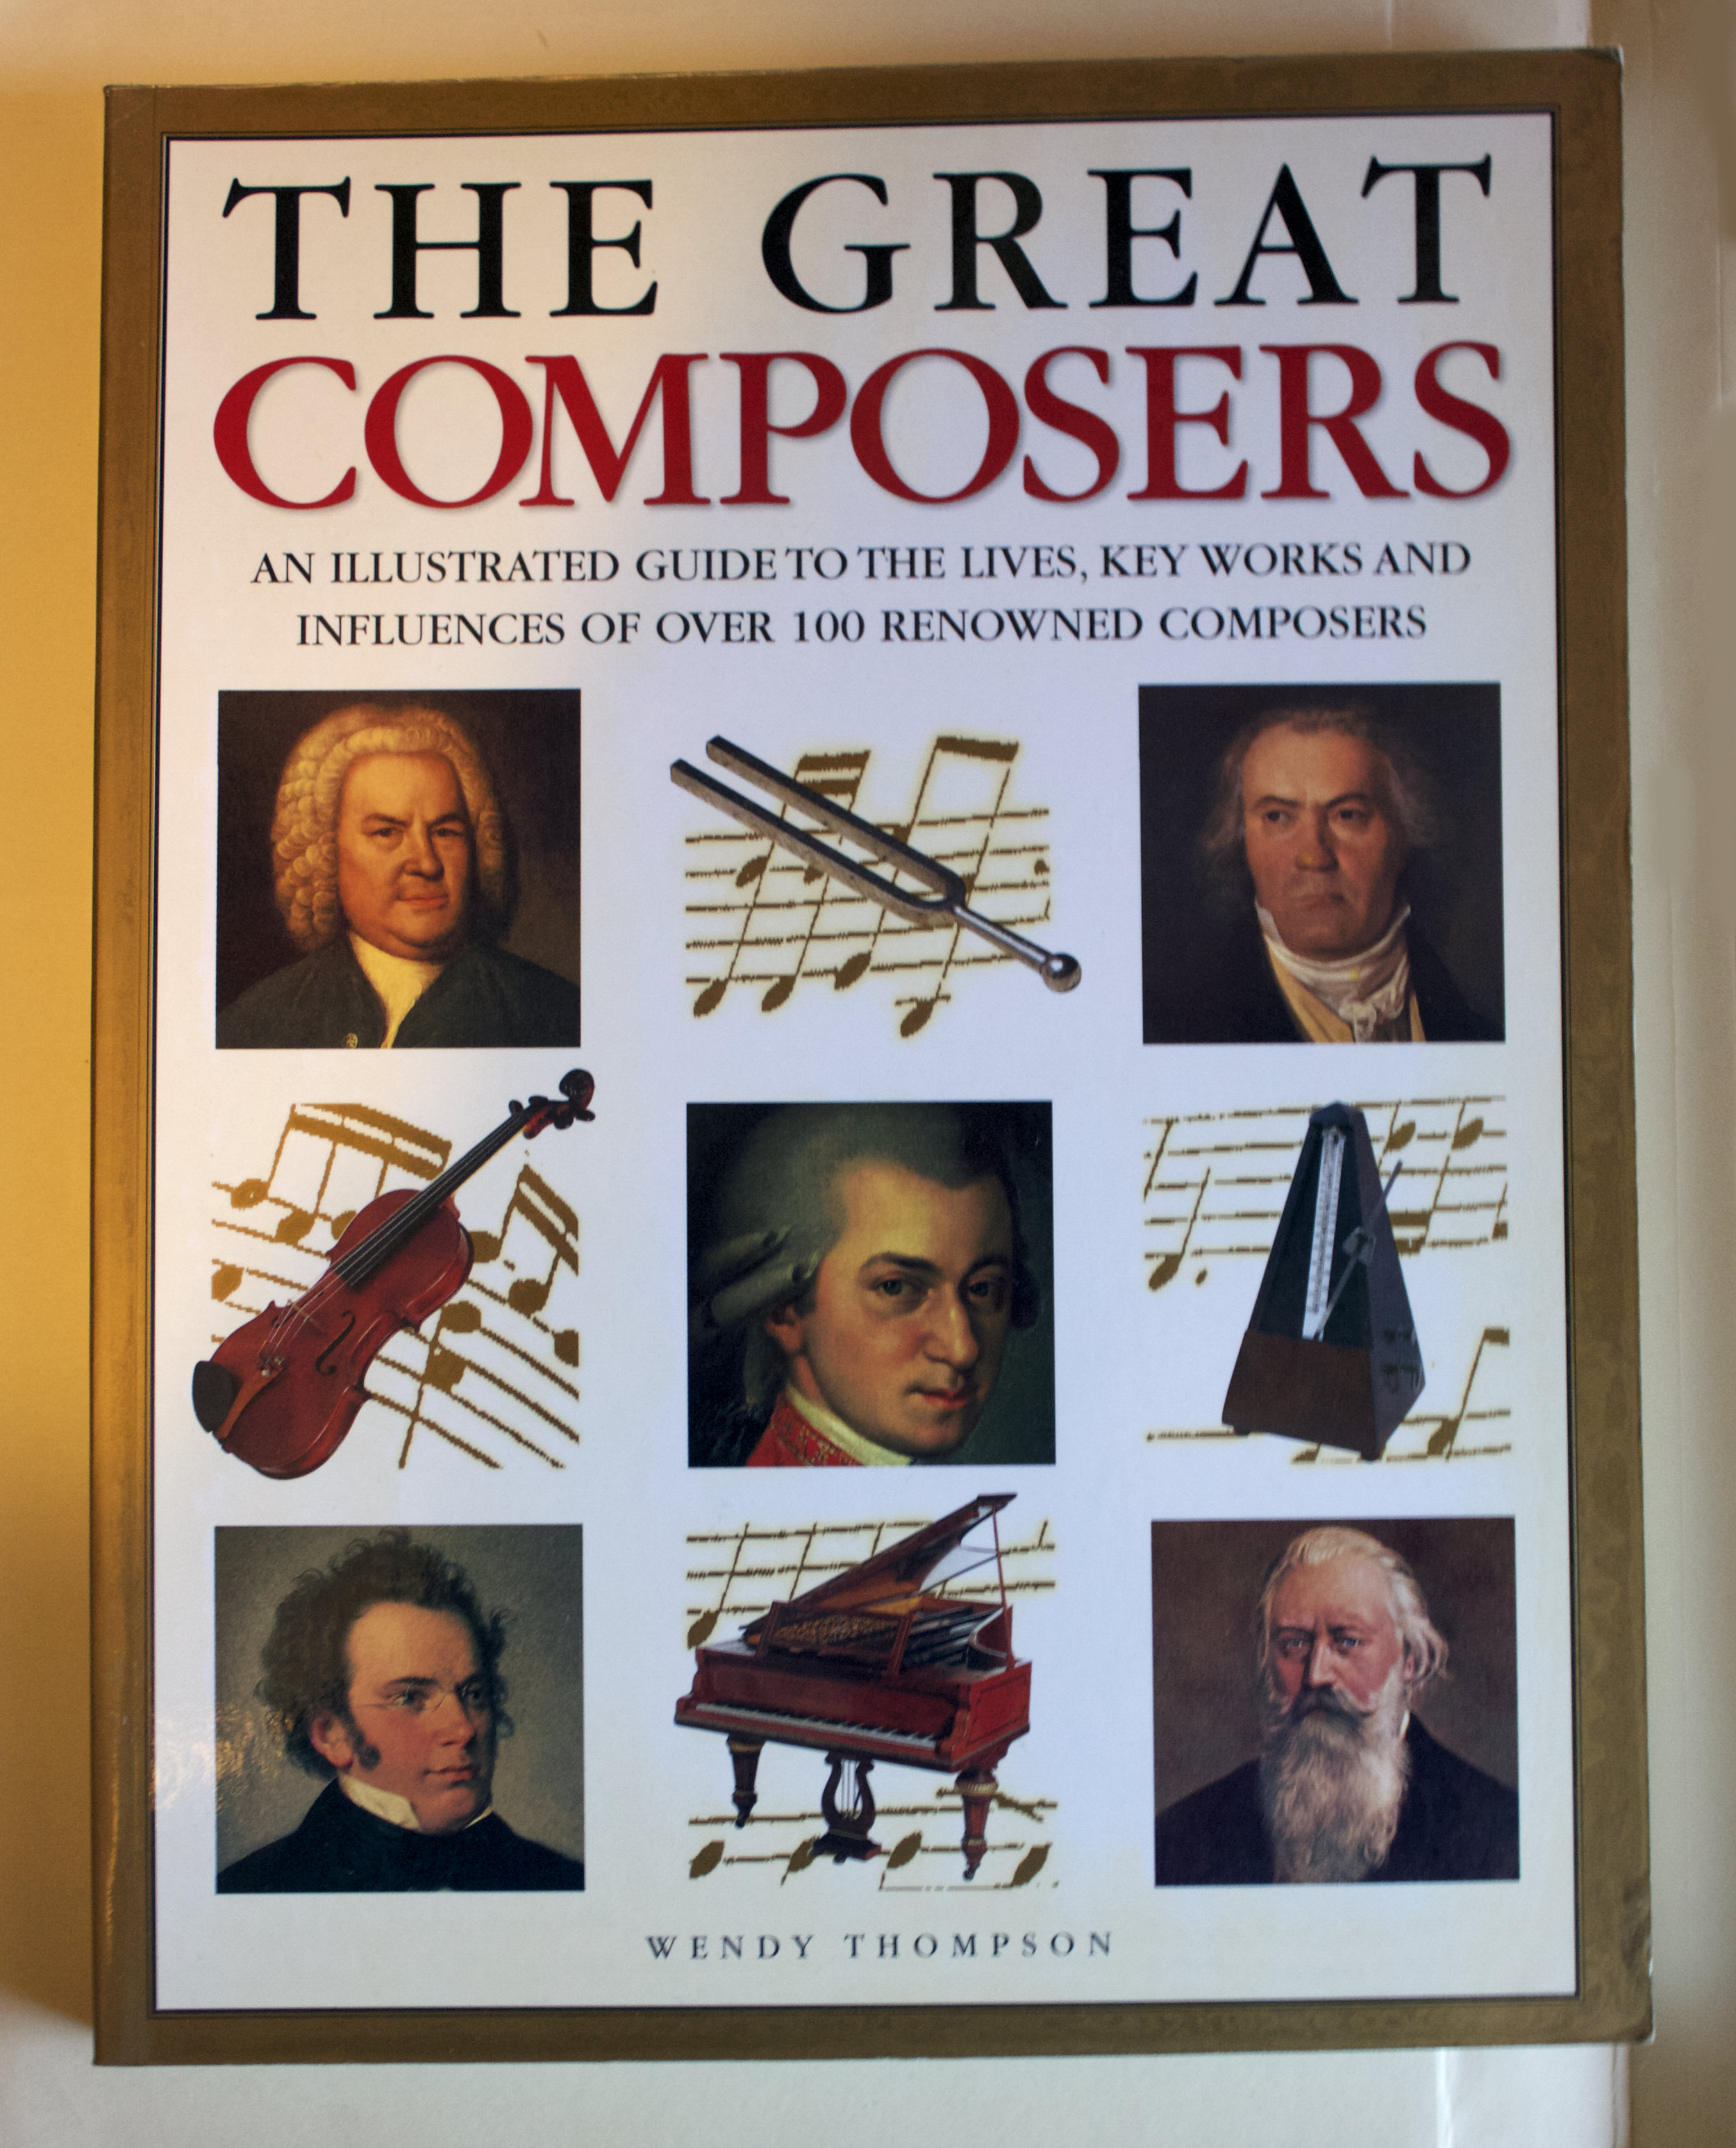 "Copy of ""The Great Composers: An Illustrated Guide to the Lives, Key Works and Influences of over 100 Renowned Composers"" by Wendy Thompson (Anness Publishing Ltd., 2002)"